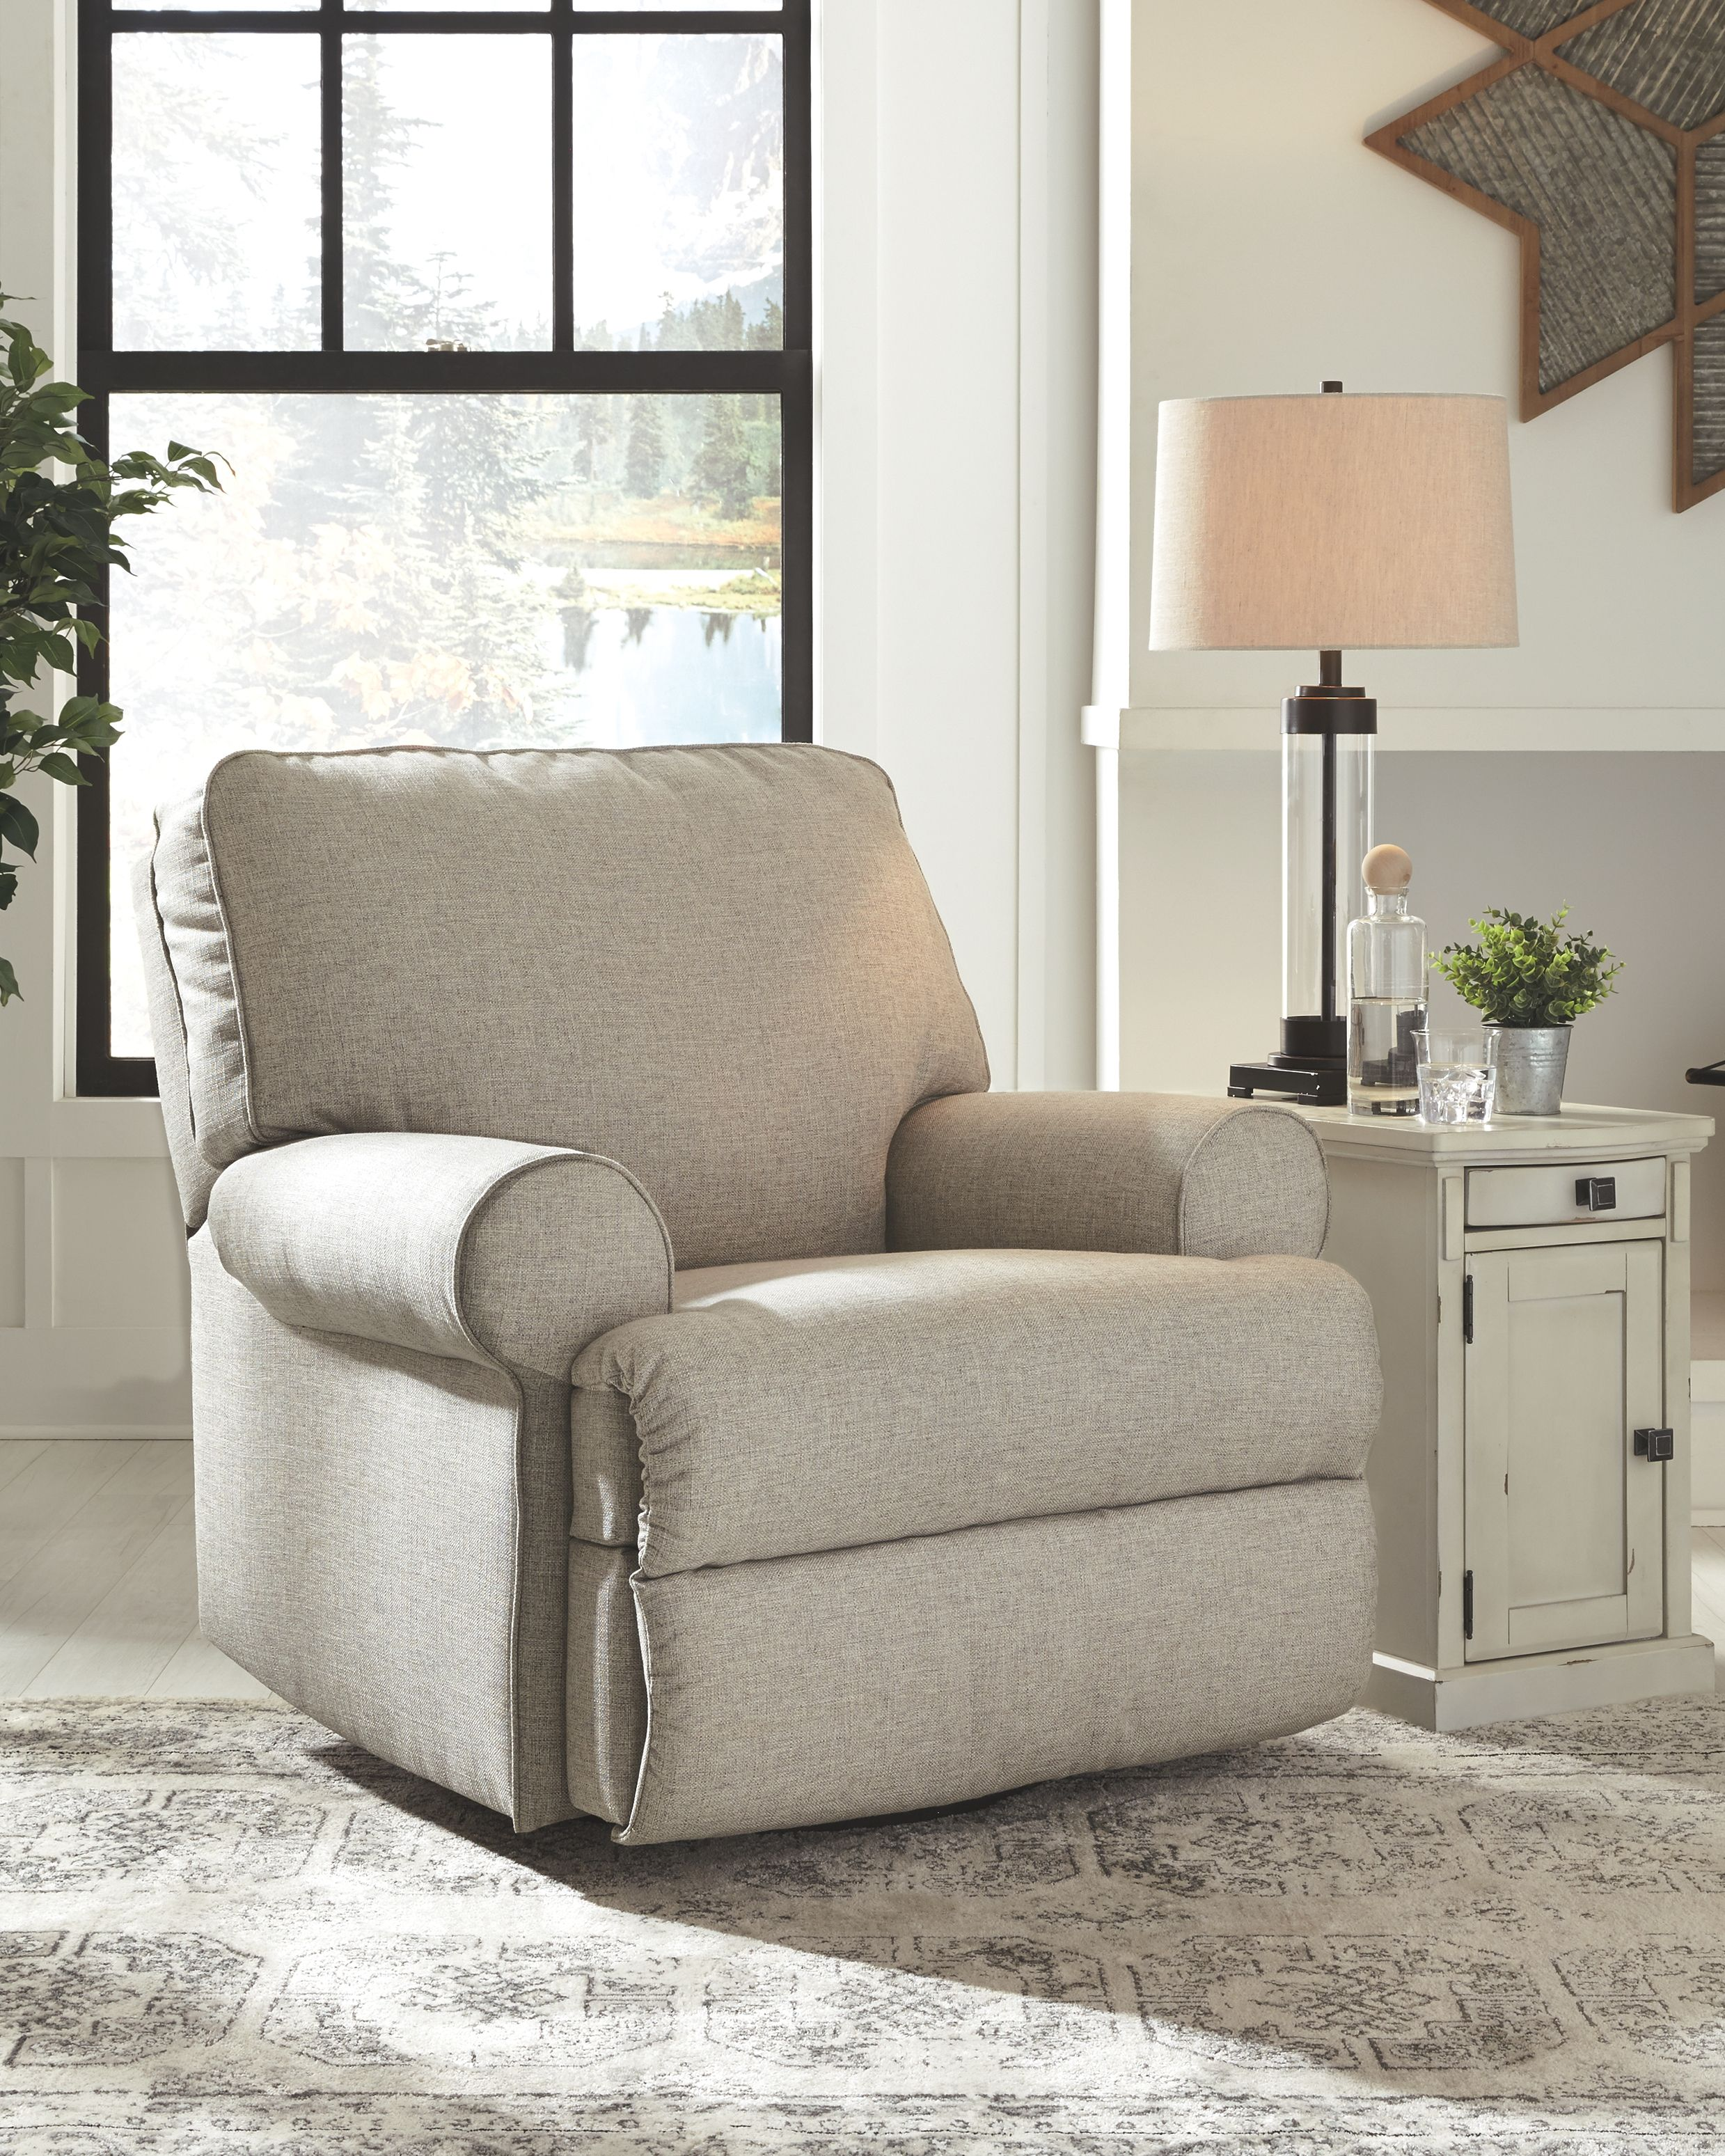 Ferncliff Swivel Glider Recliner Swivel Recliner Chairs Living